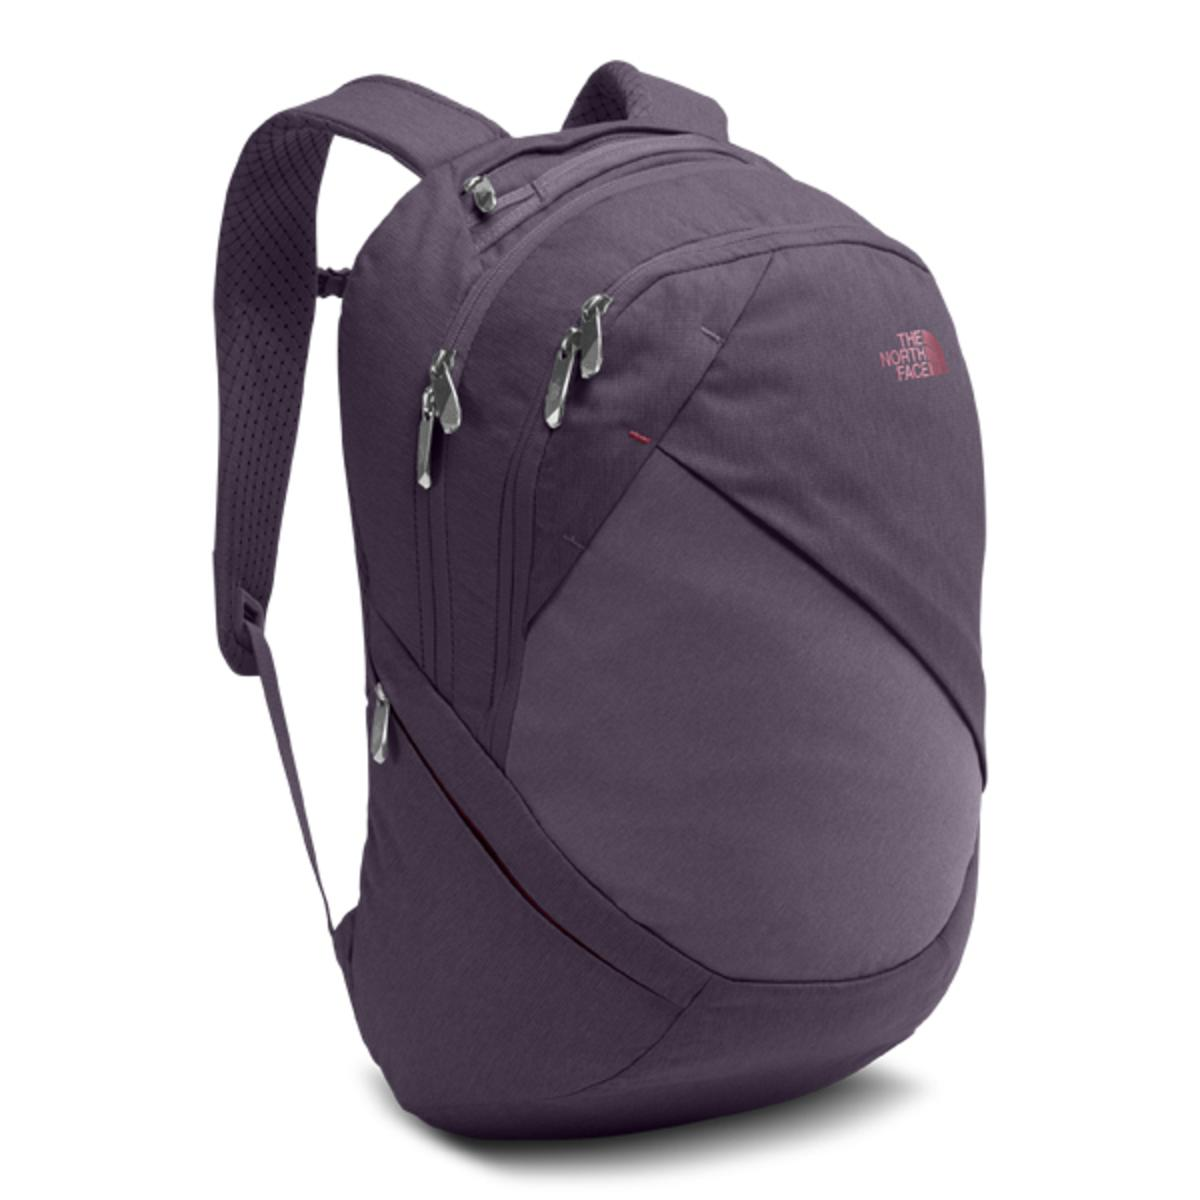 6f5fba473 The North Face Women's Isabella Backpack Bag - The Warming Store